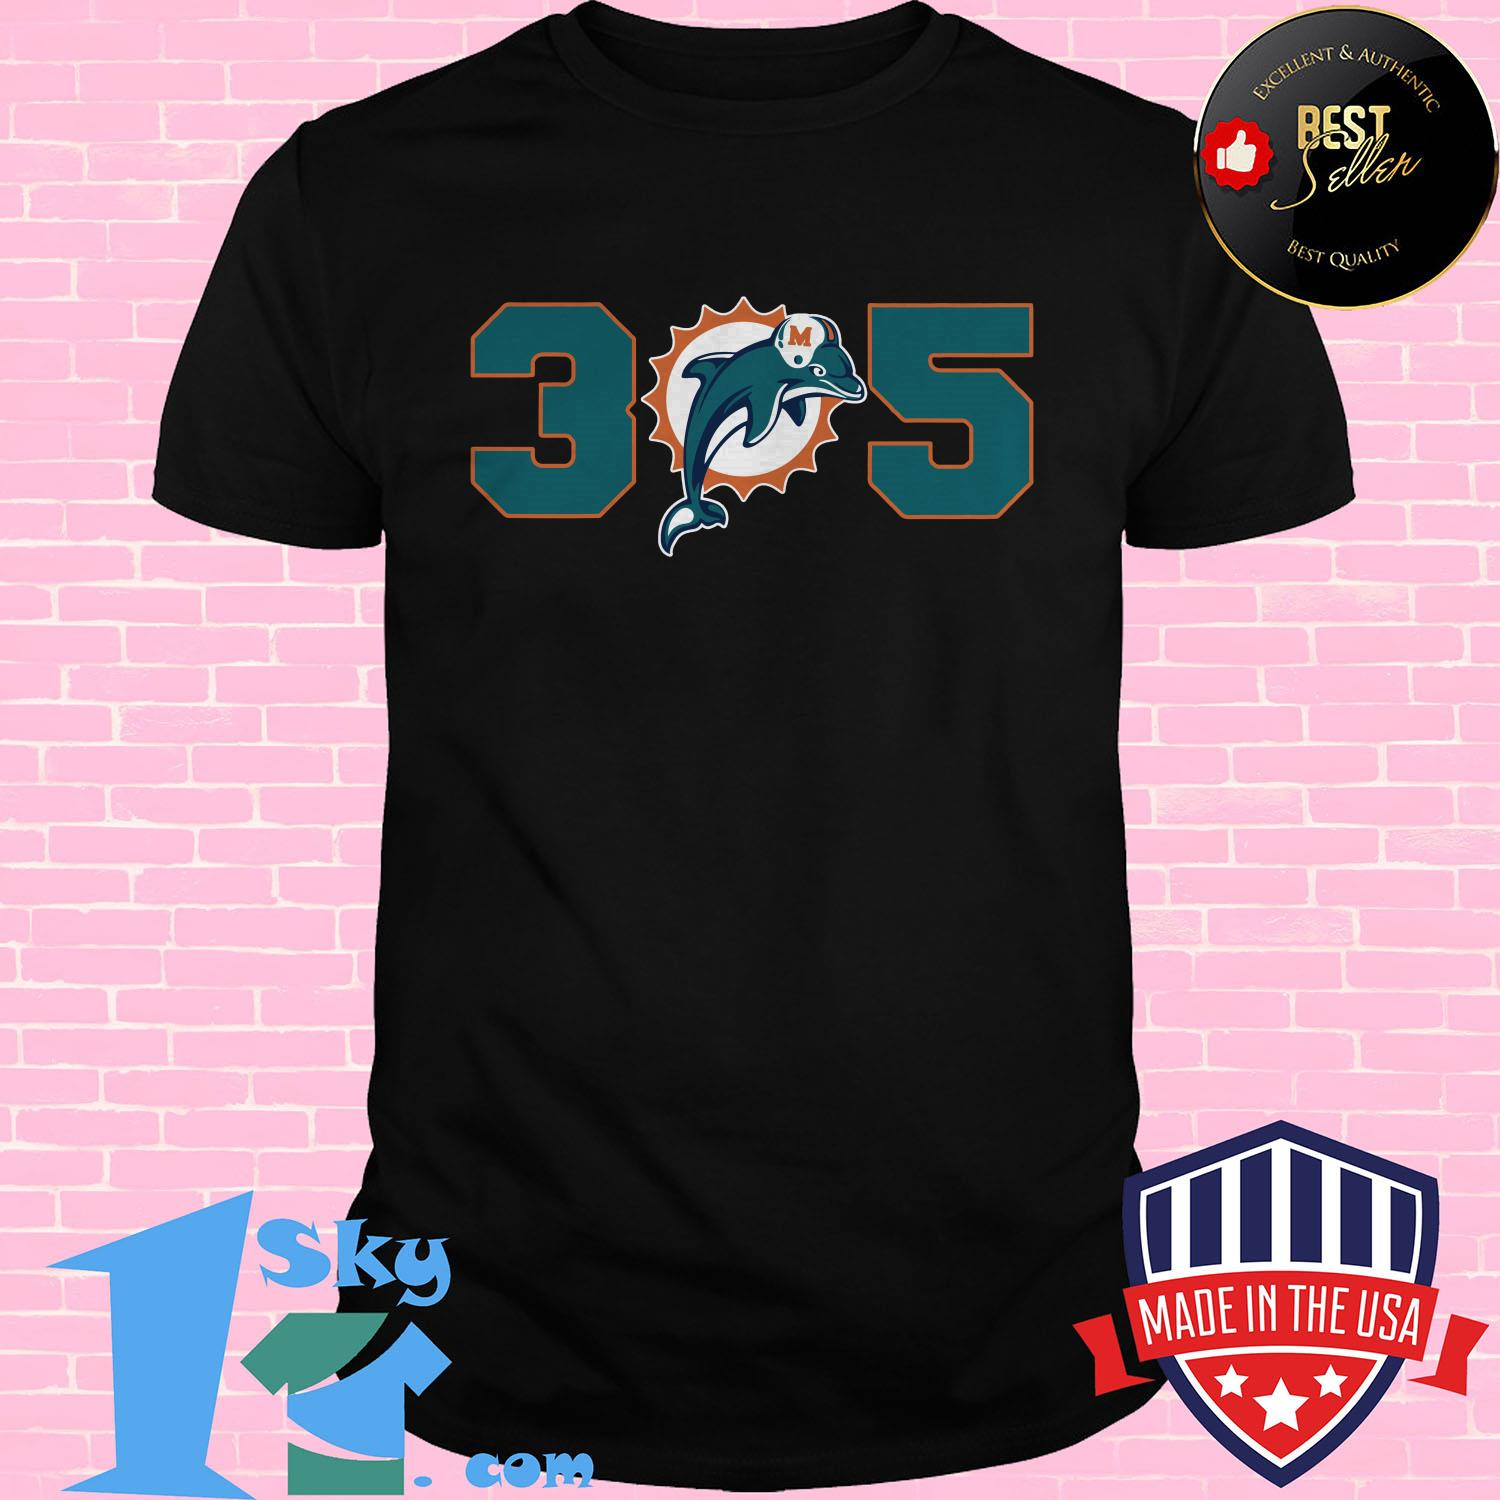 official 305 miami dolphins ladies tee - Official 305 Miami Dolphins shirt